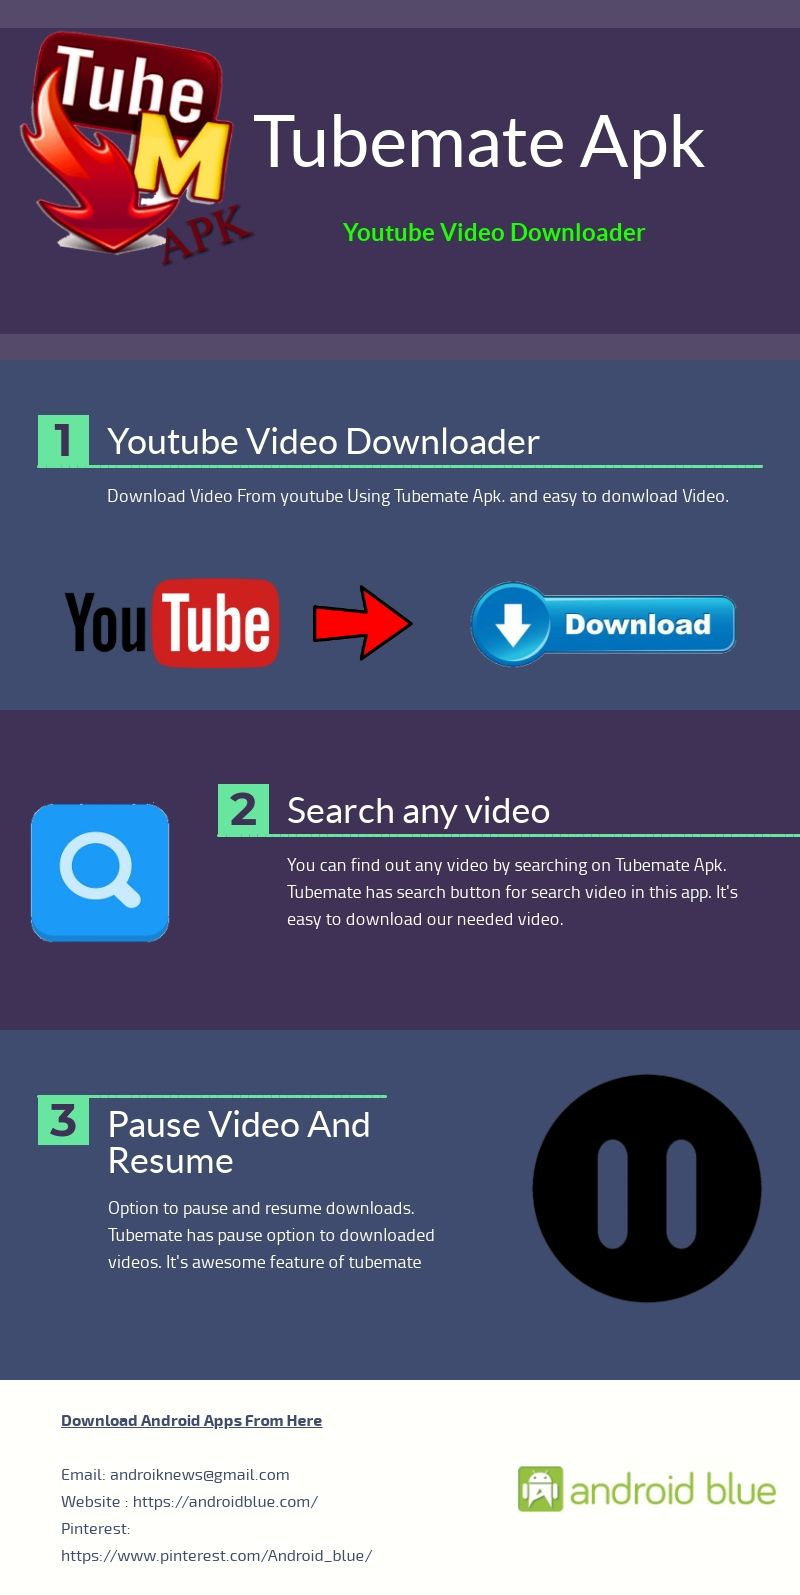 Tubemate Apk Video downloader app, Download app, Video